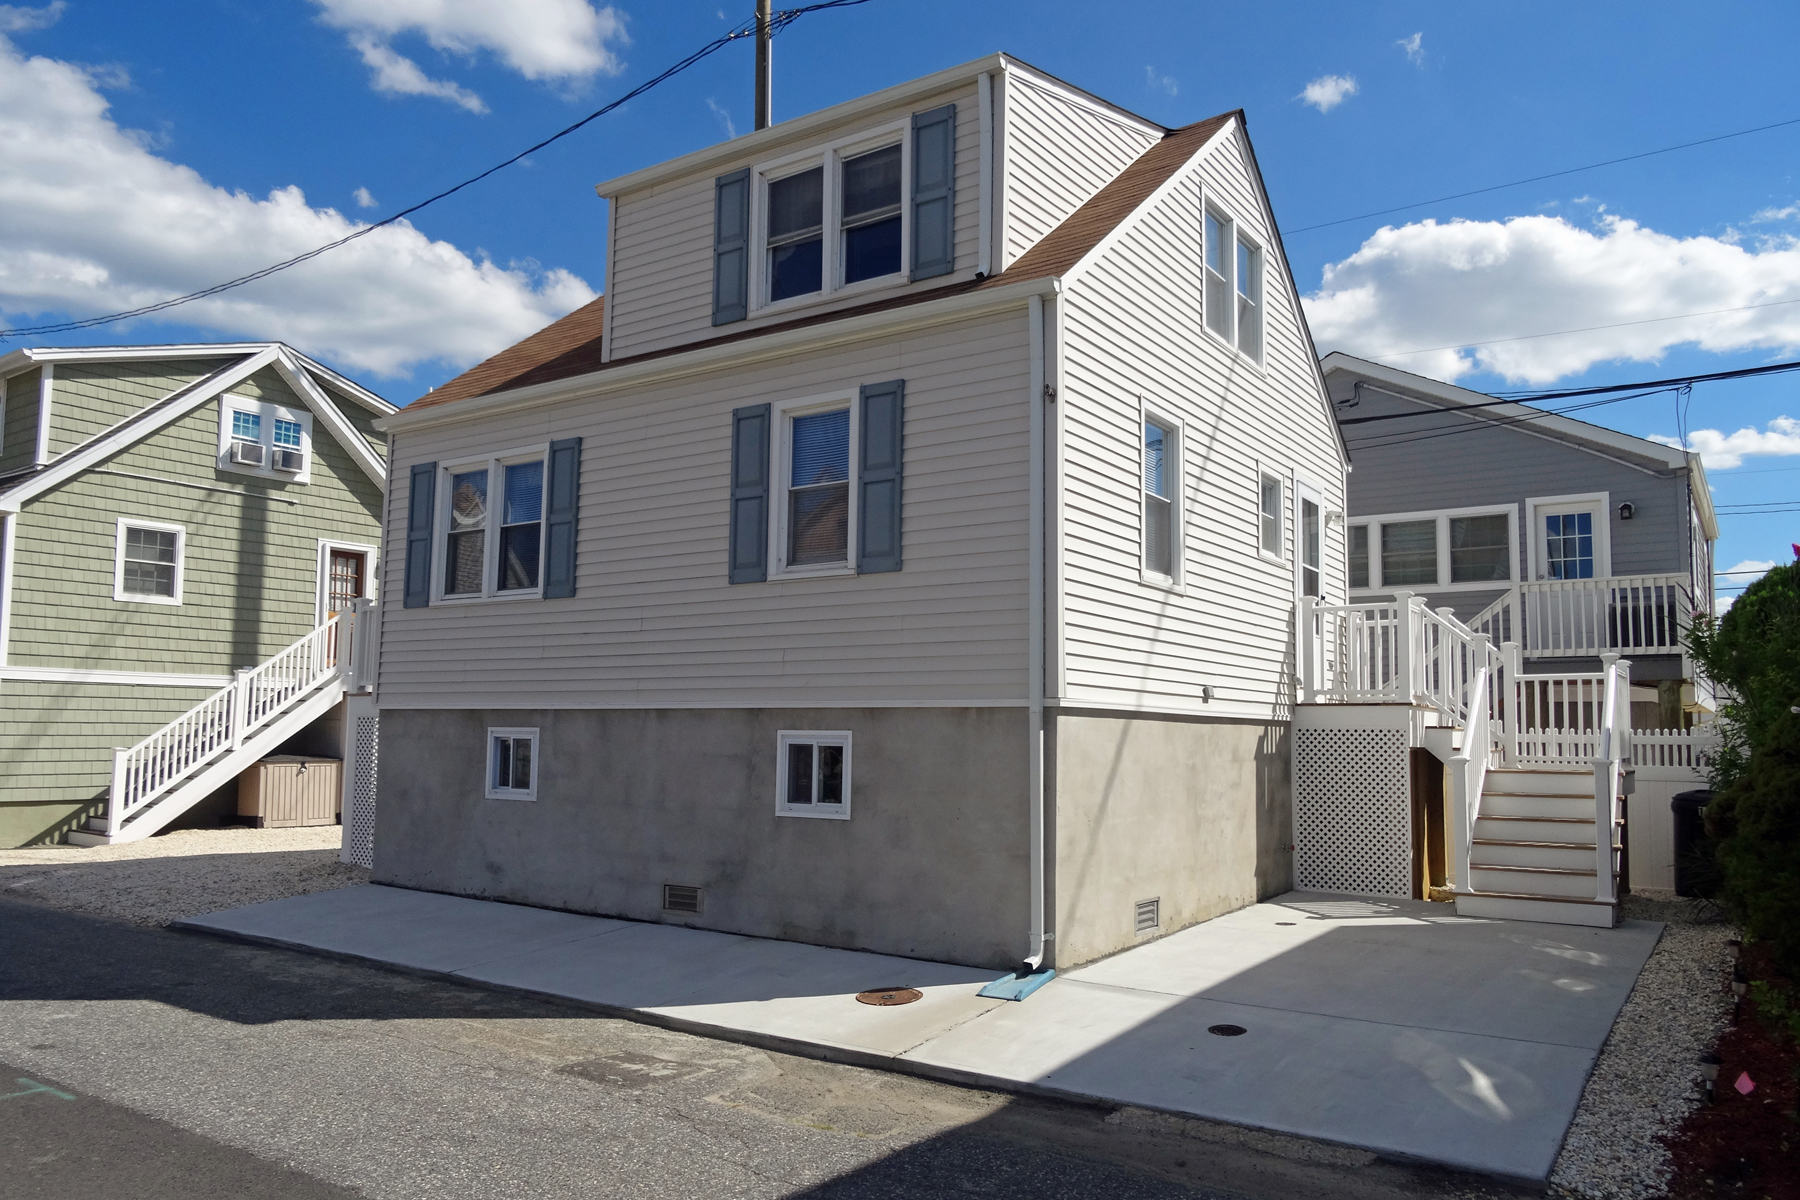 Maison unifamiliale pour l Vente à Completely Renovated Home 167 W Beach Way Lavallette, New Jersey, 08735 États-Unis